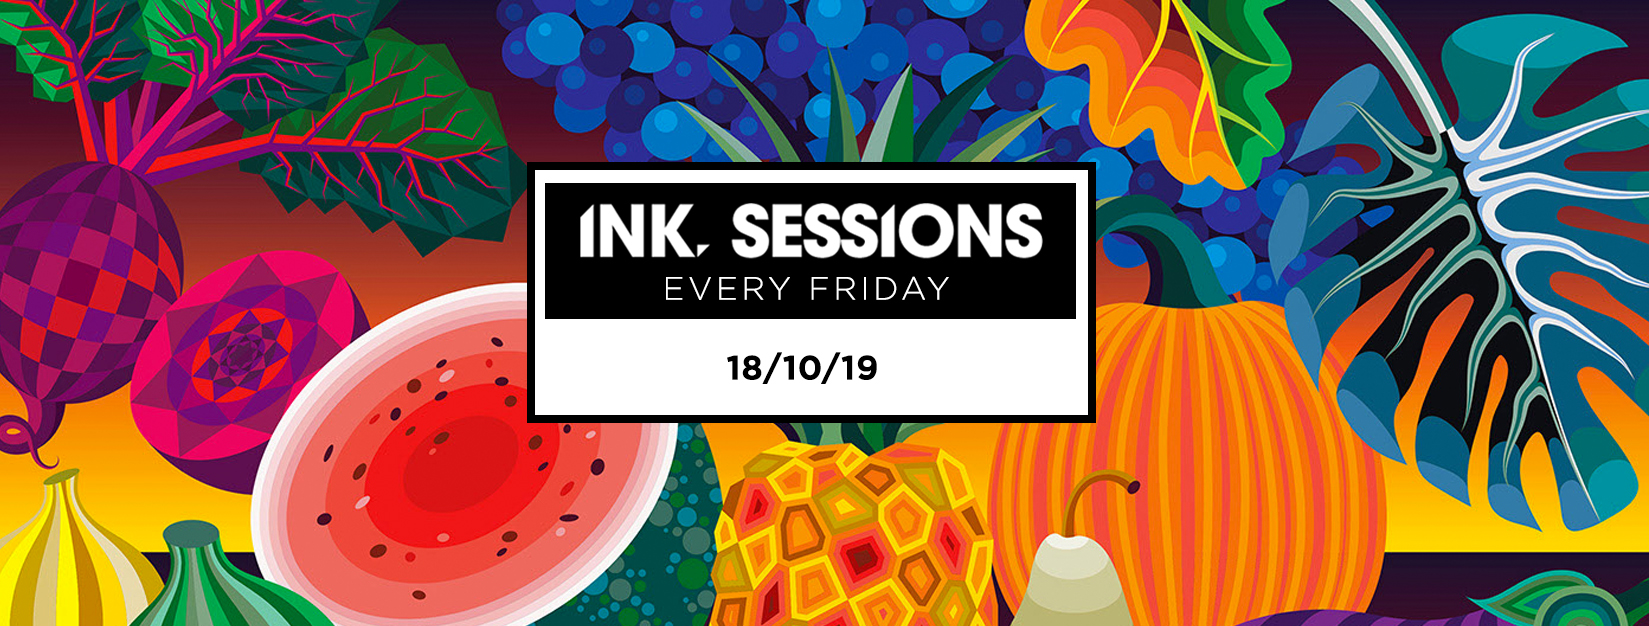 Ink Sessions – 18/10/19 LAST 200 TICKETS